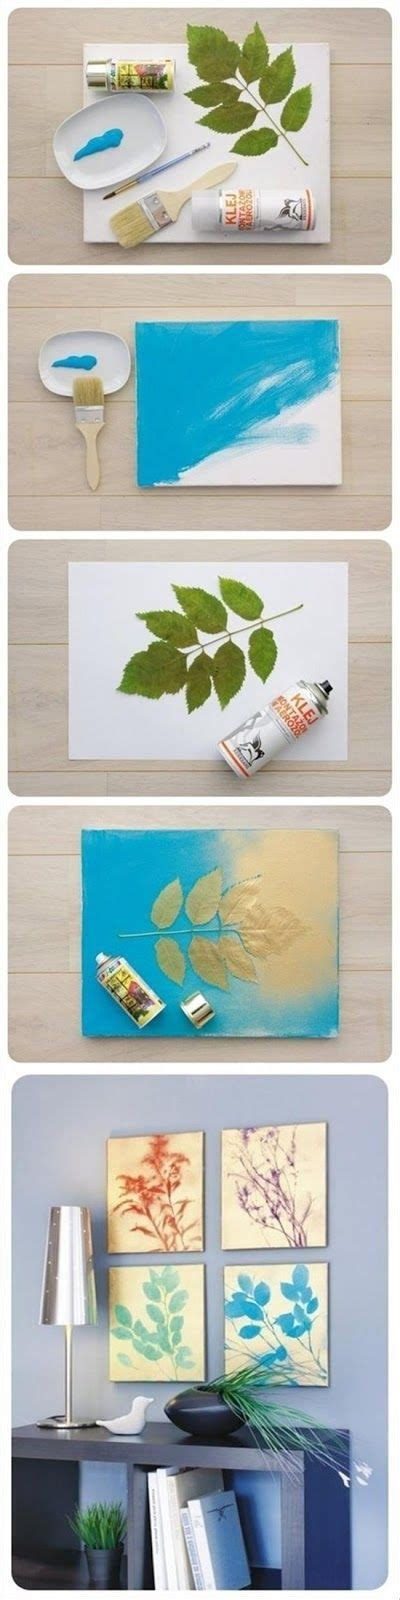 diy decorations using paper 20 extraordinary smart diy wall paper decor free template included